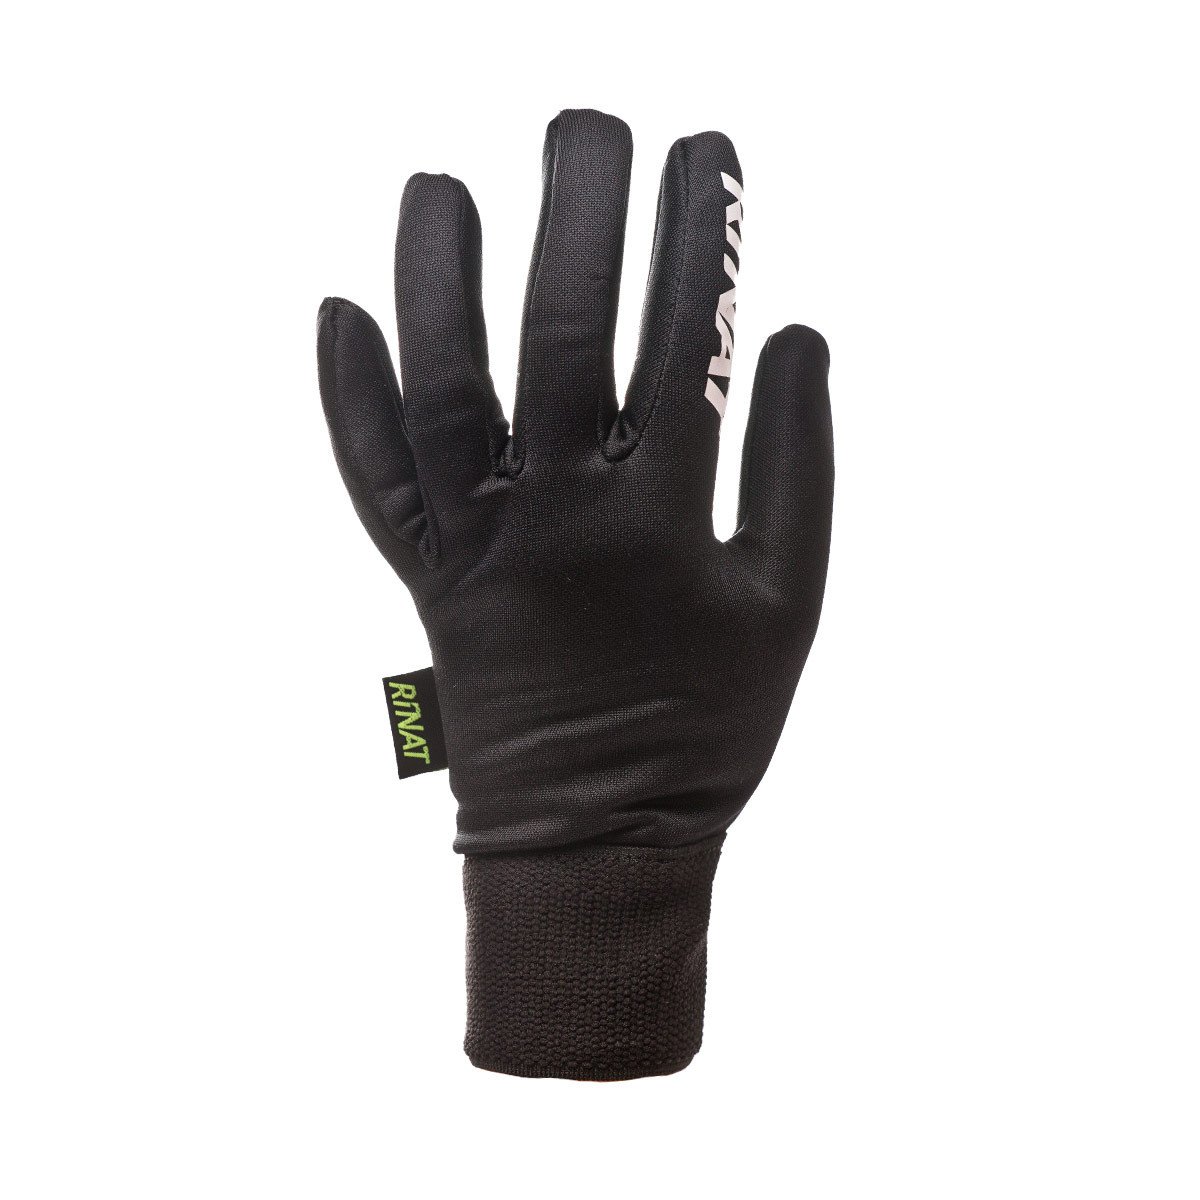 release info on on sale new high quality Rinat Thermal Glove